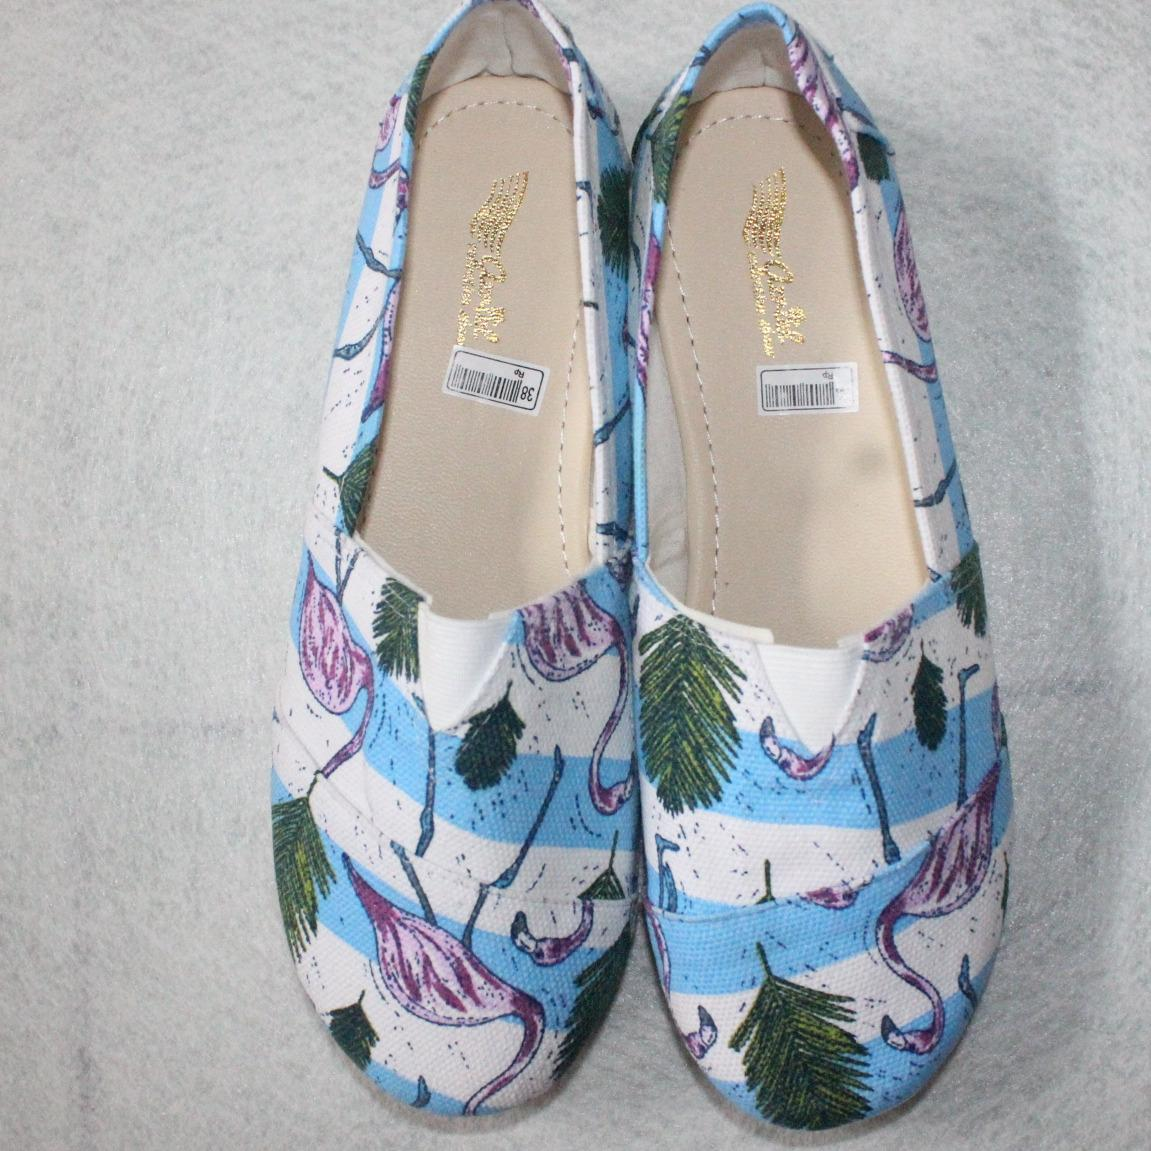 Sepatu flat shoes/slip on wakai/toms motif angsa